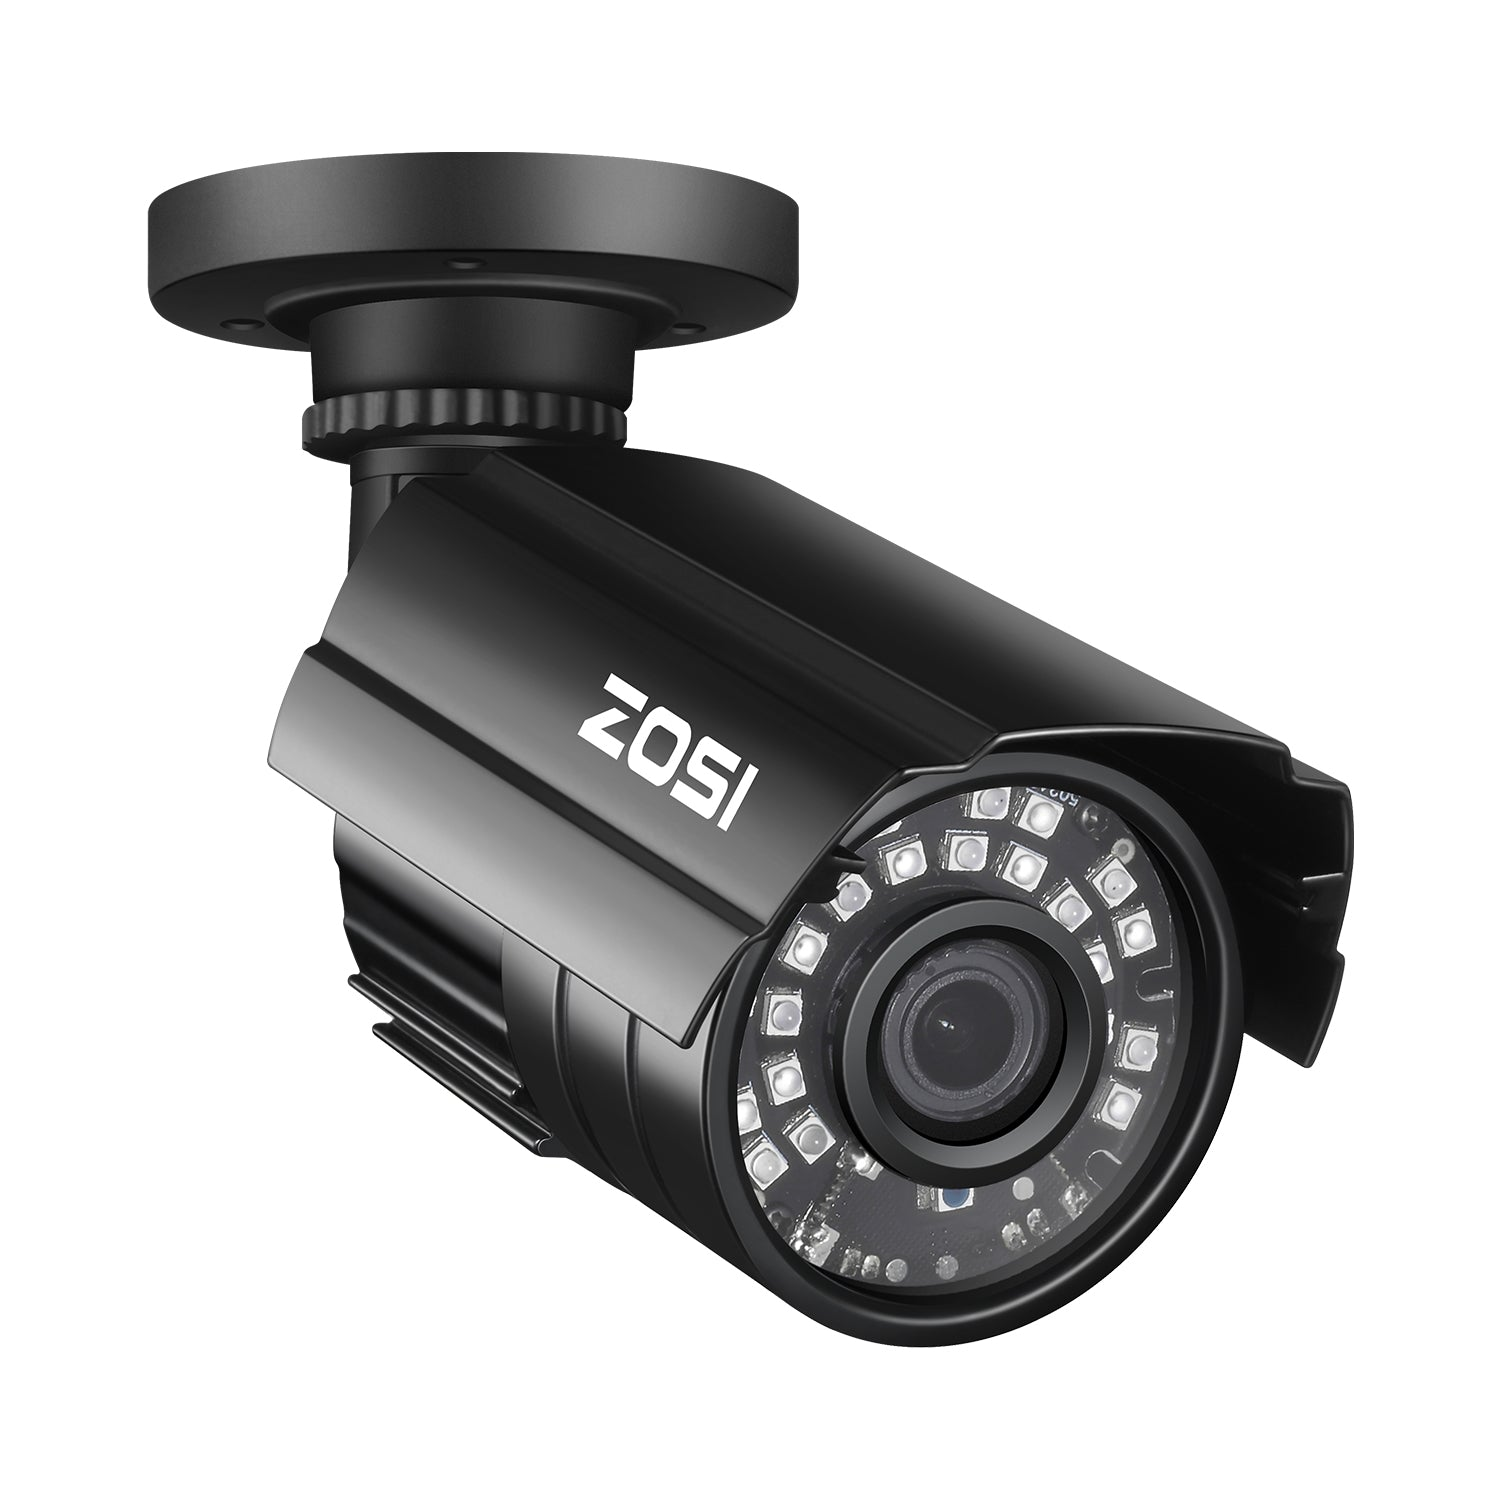 1080P Bullet Security Camera, 80ft Night Vision, Compatible with TVI CVI AHD CVBS DVR System